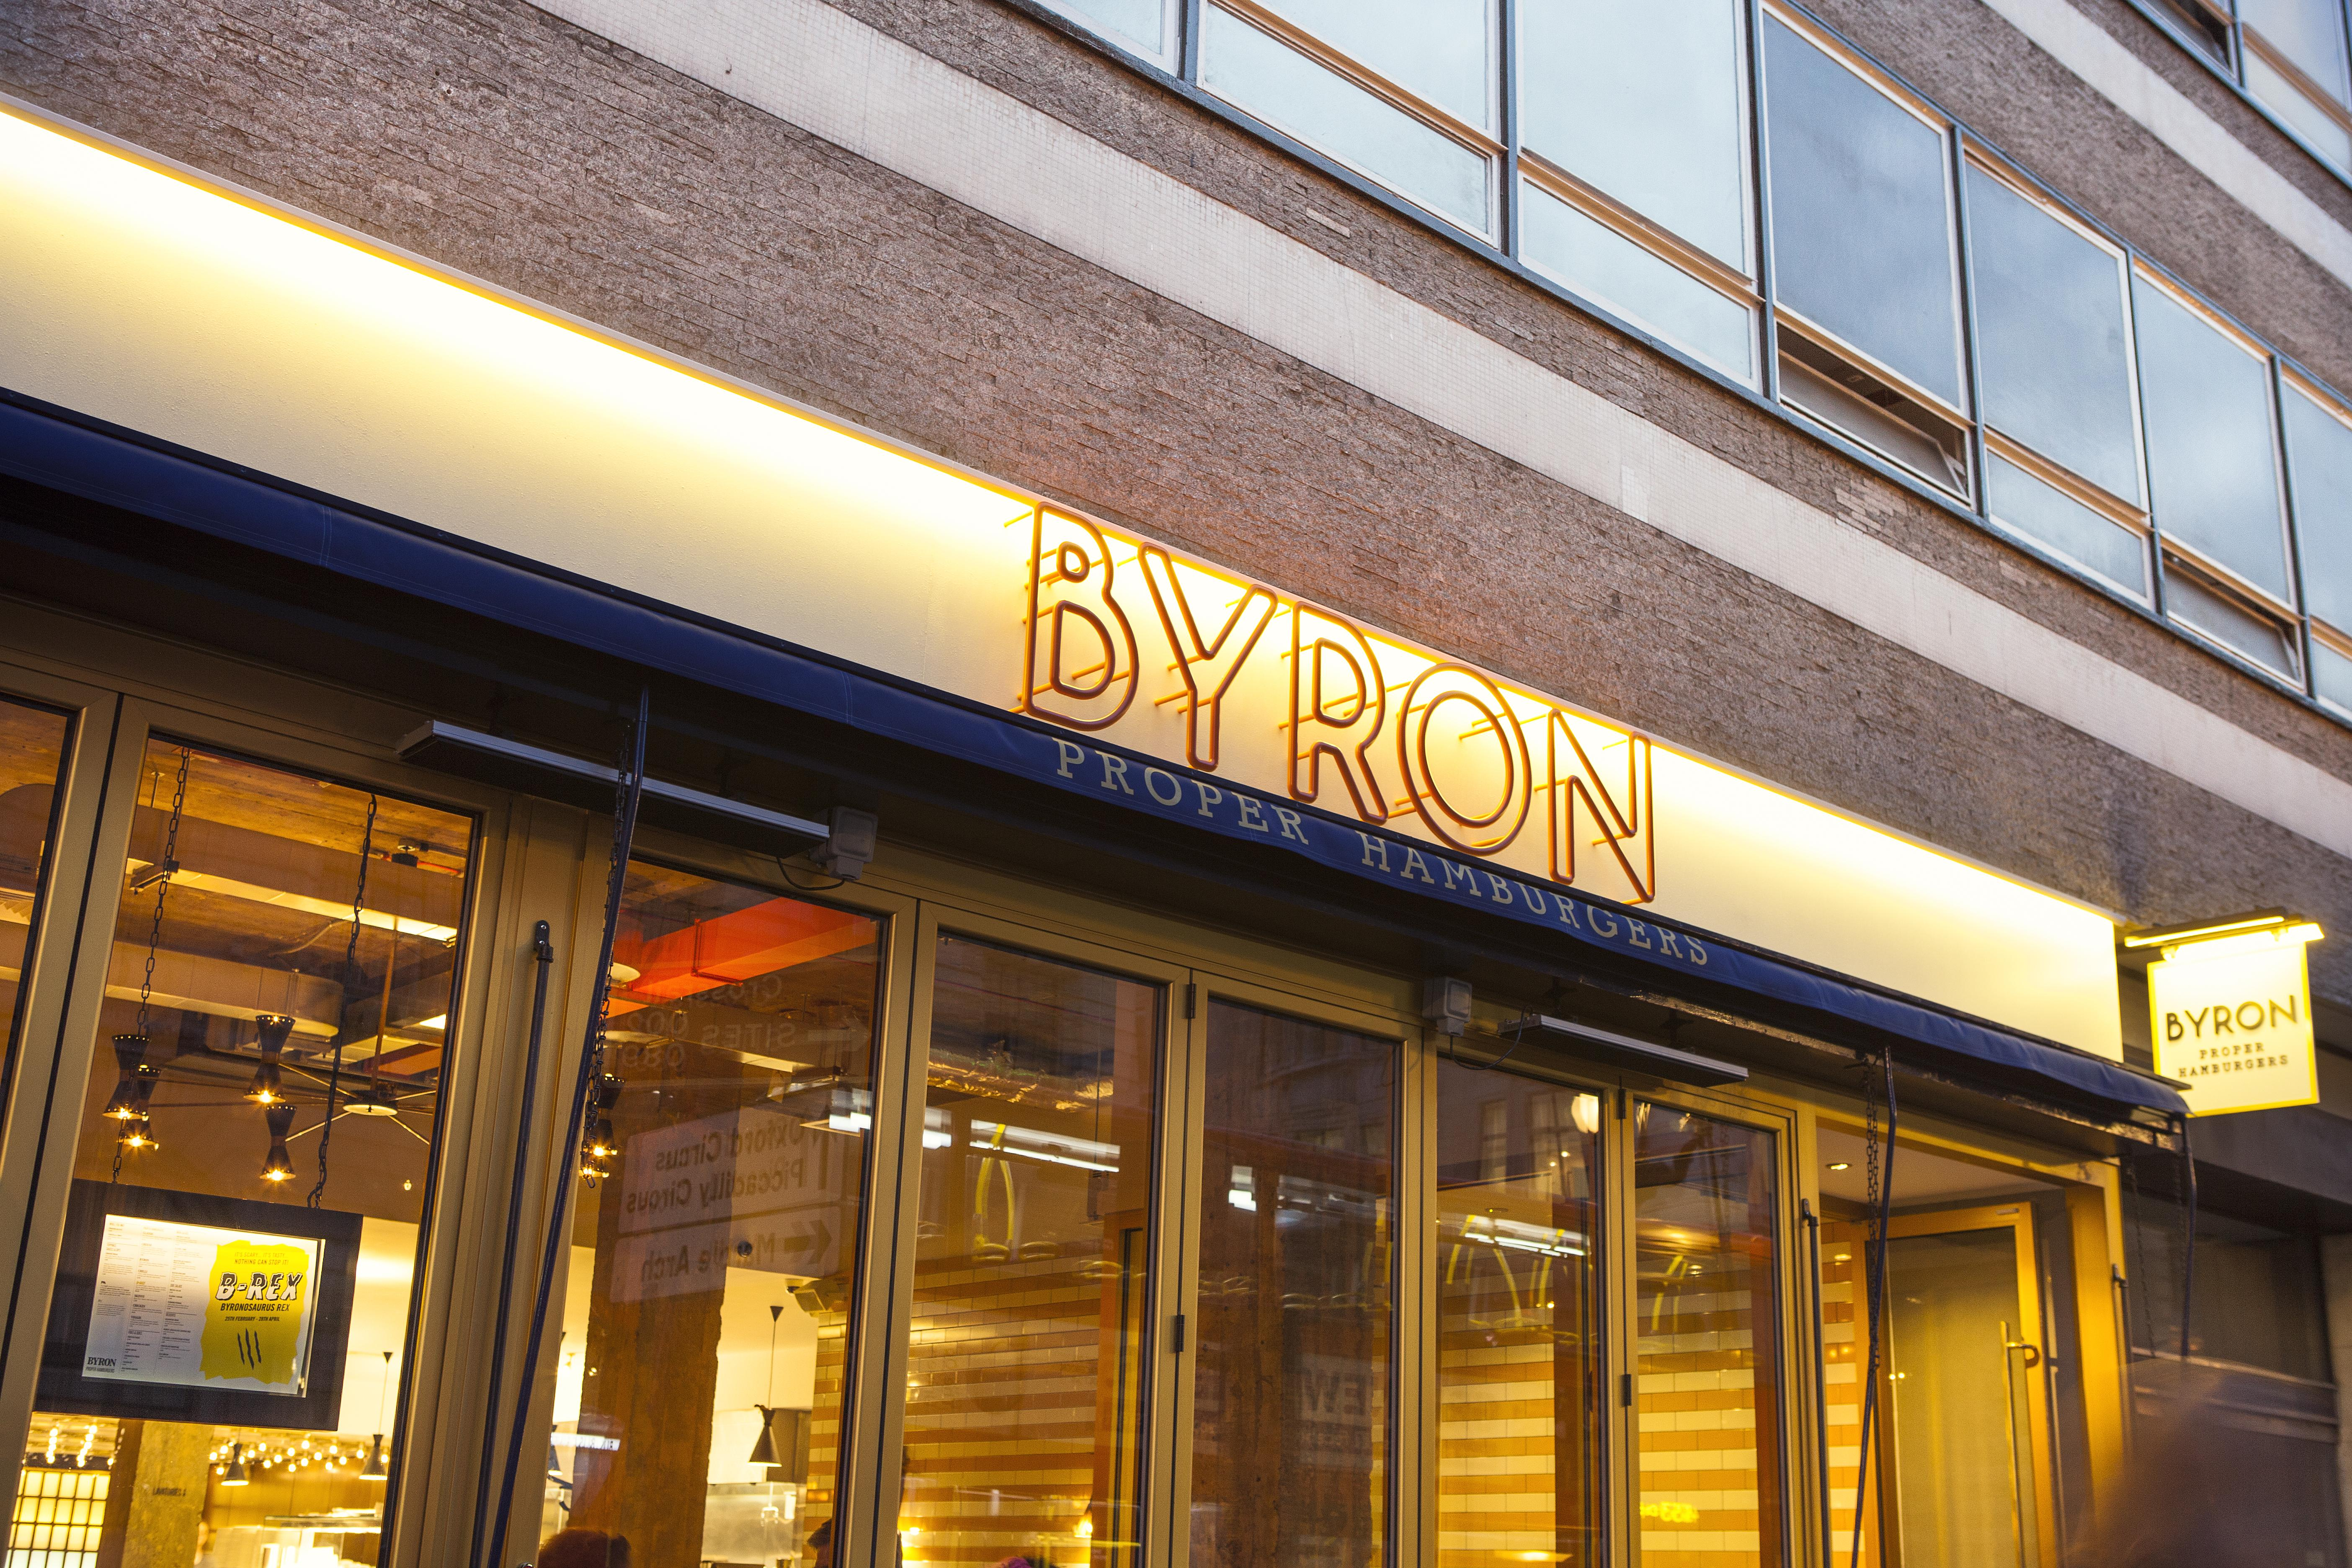 Byron - Oxford Circus - London